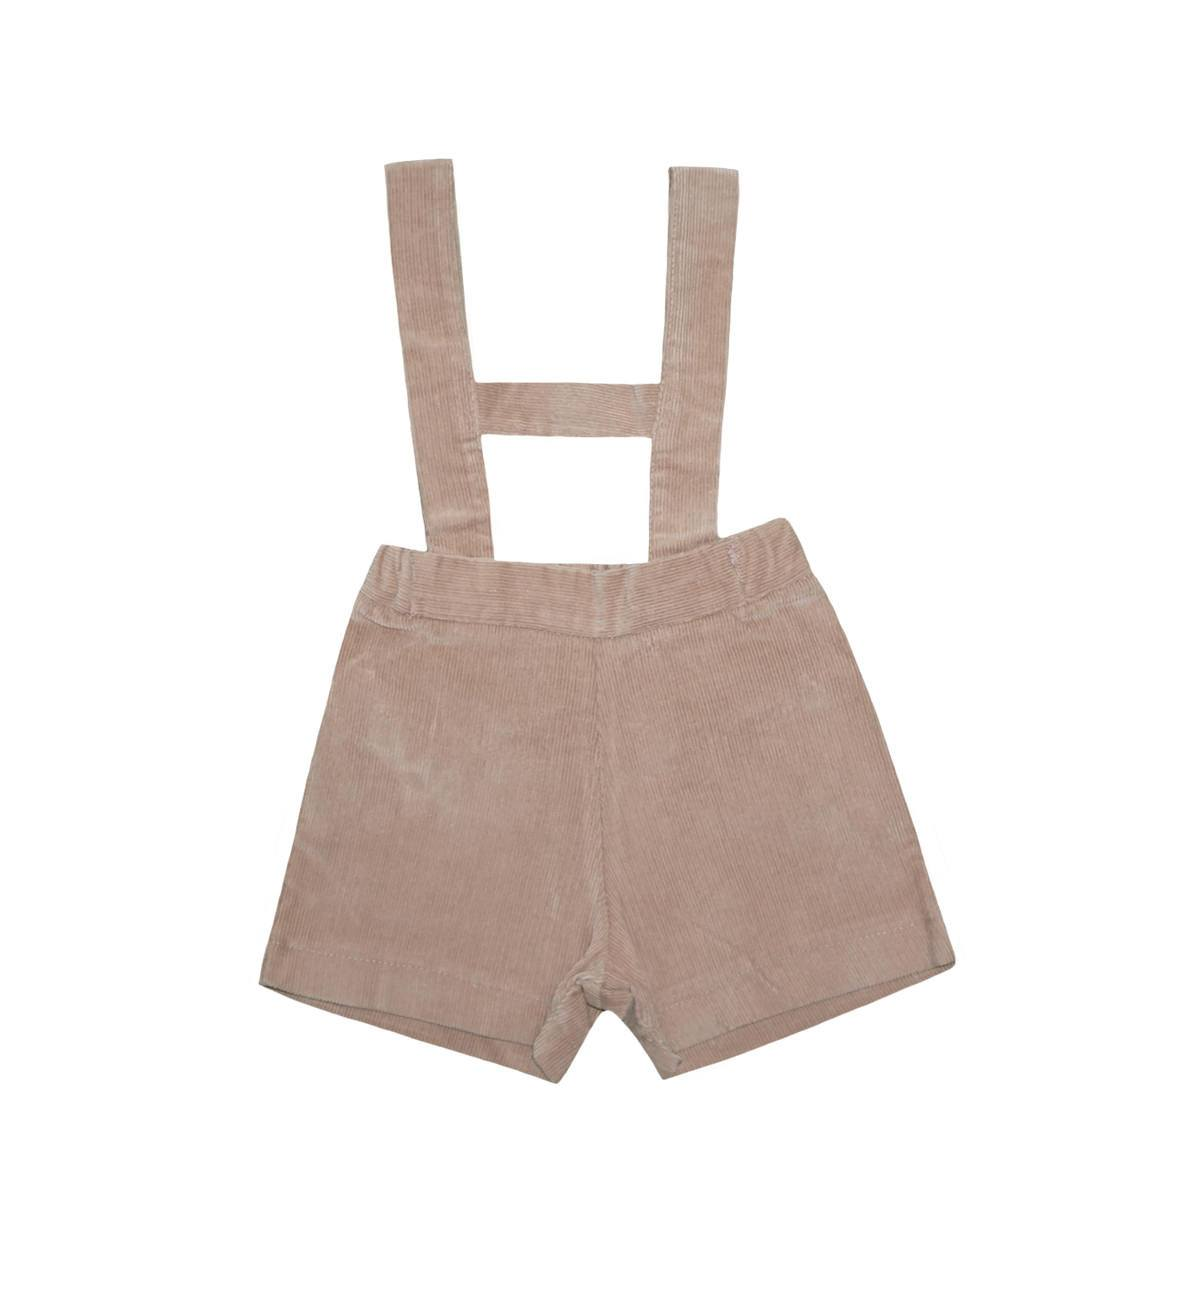 Spanish baby clothes | baby Dungaree | Camel dungaree |babymaC  - 1